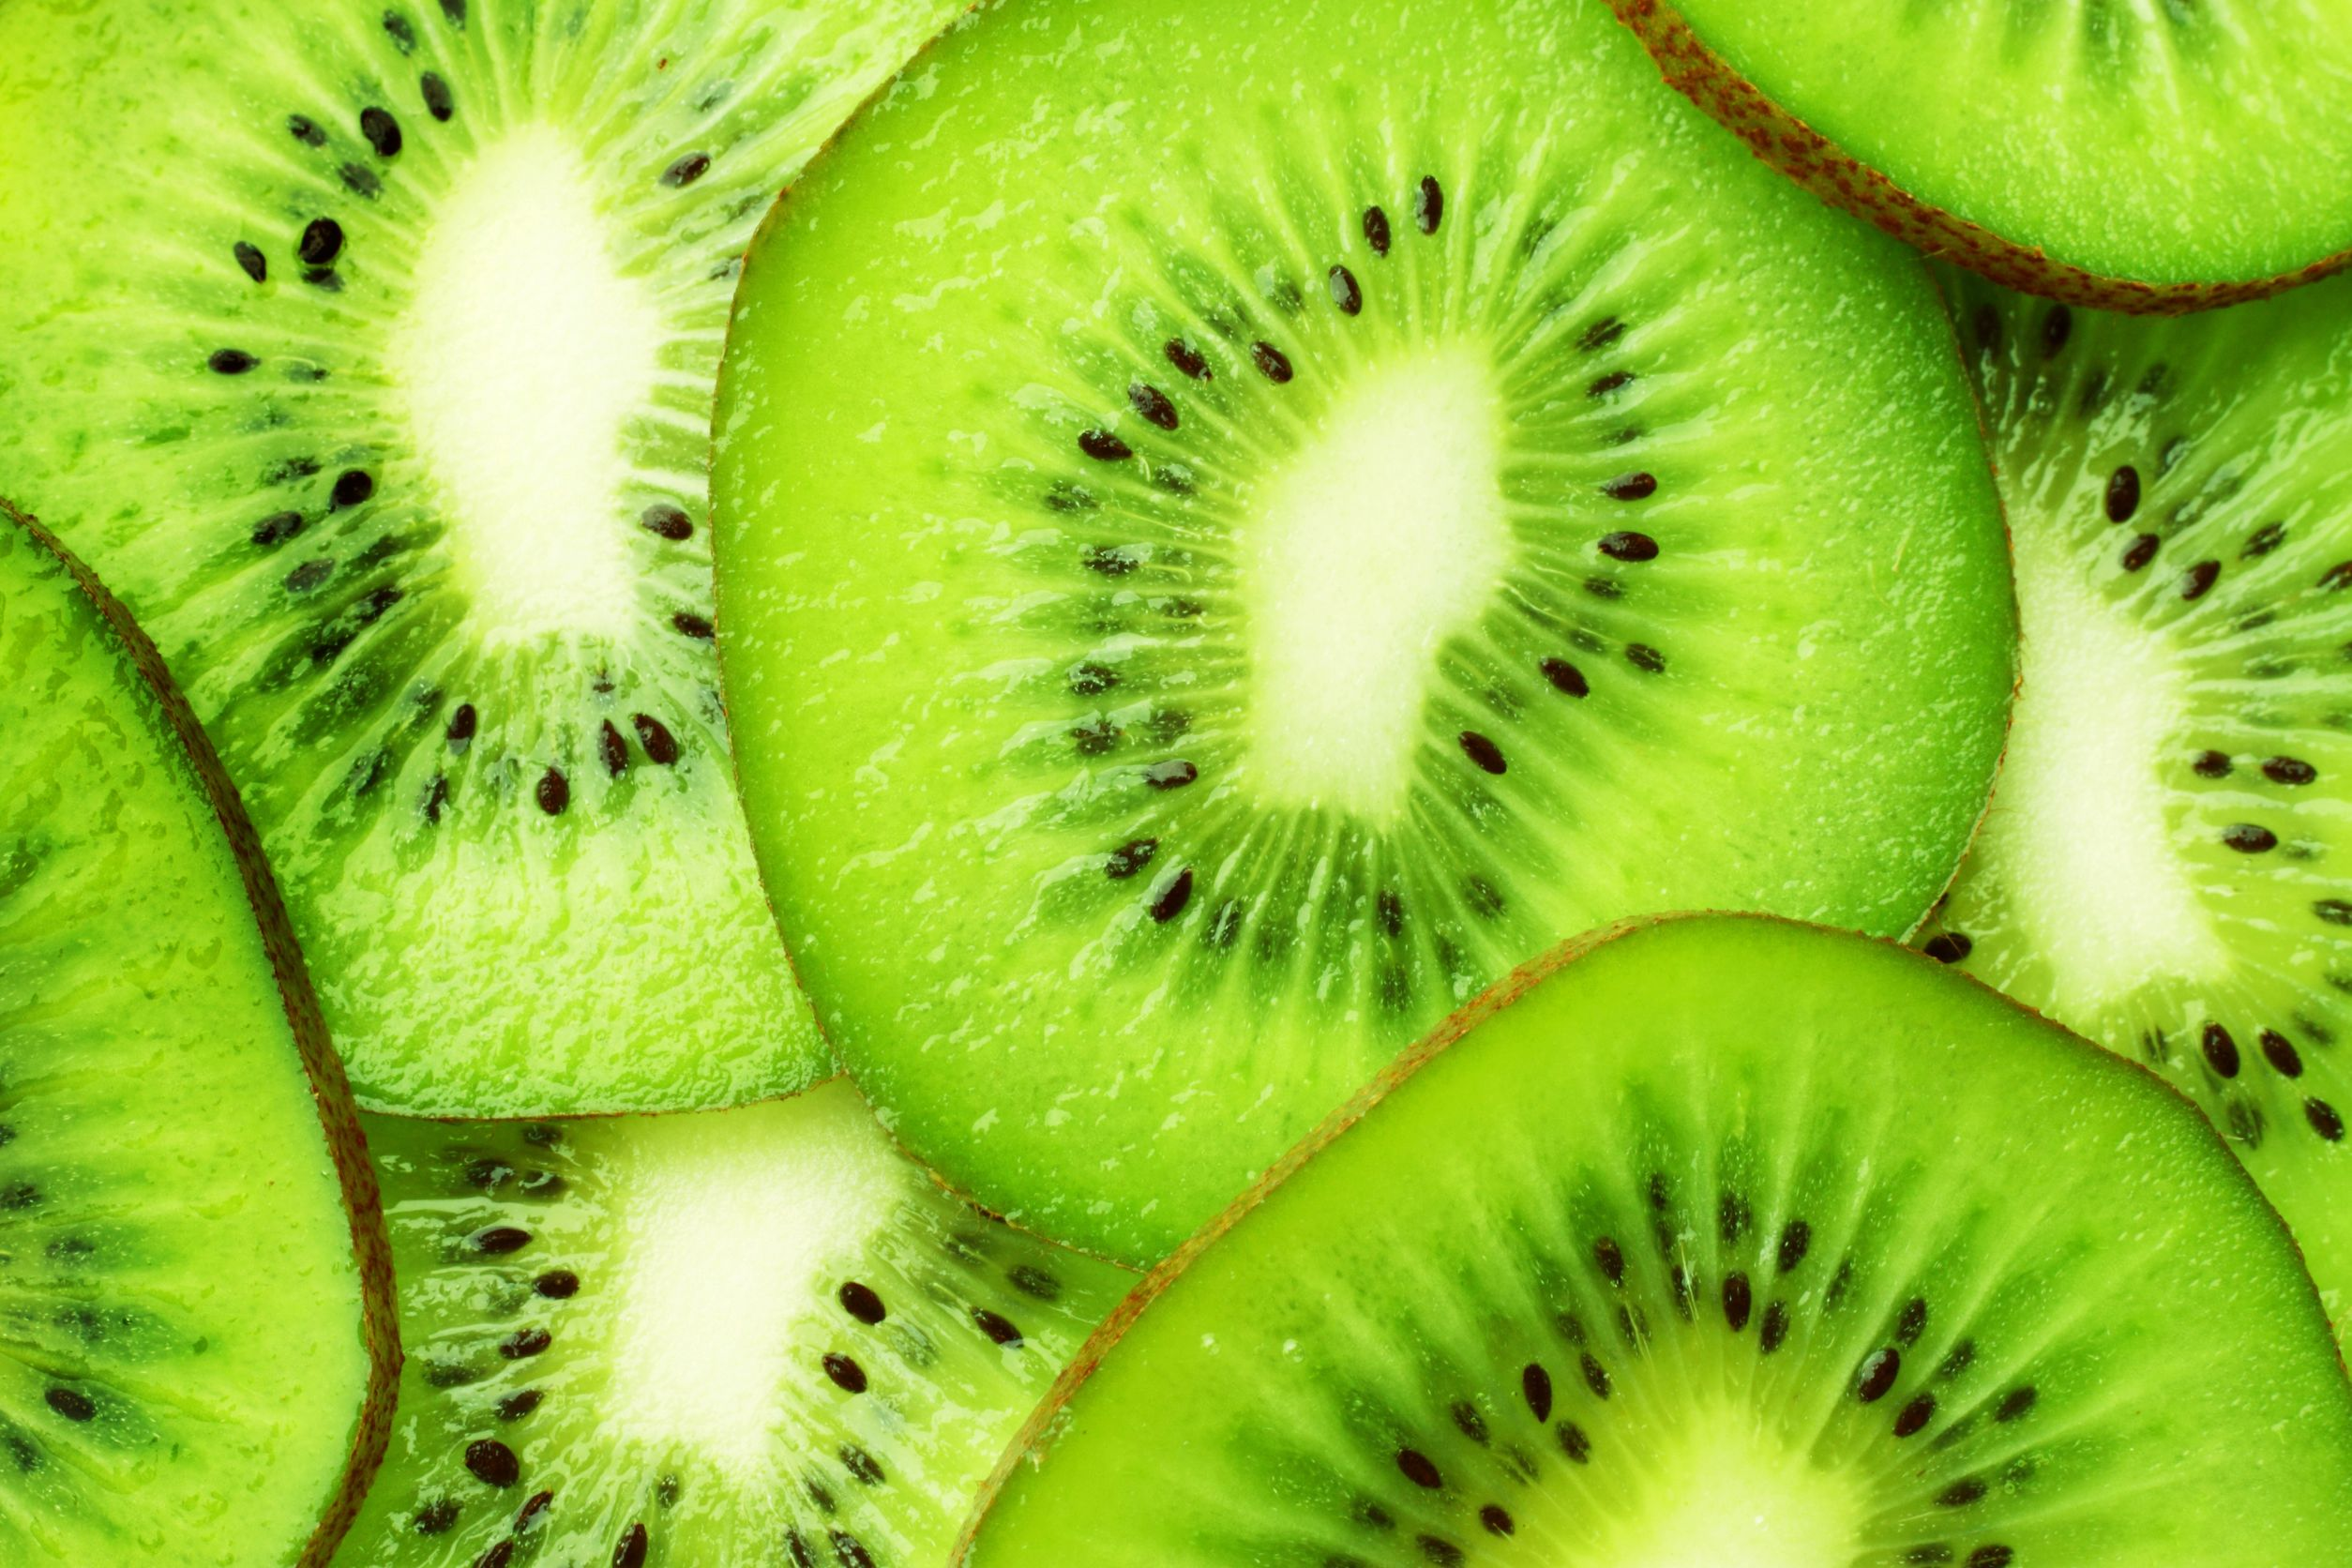 new zealand kiwi slices 123rf